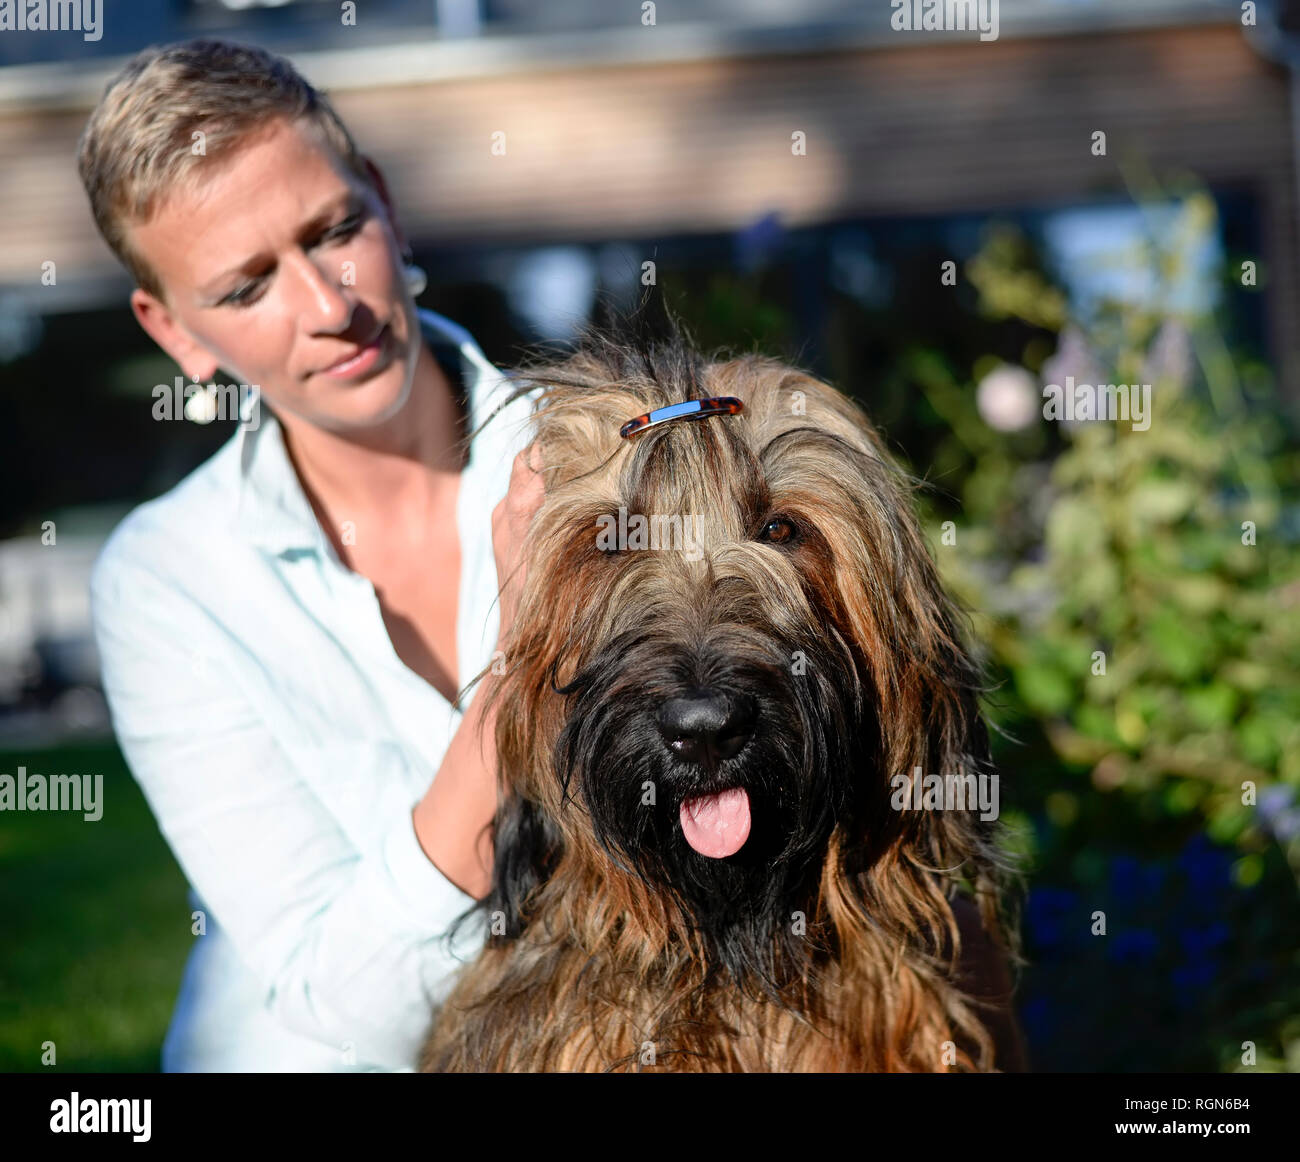 Portrait of dog with hair clip with owner in the background - Stock Image